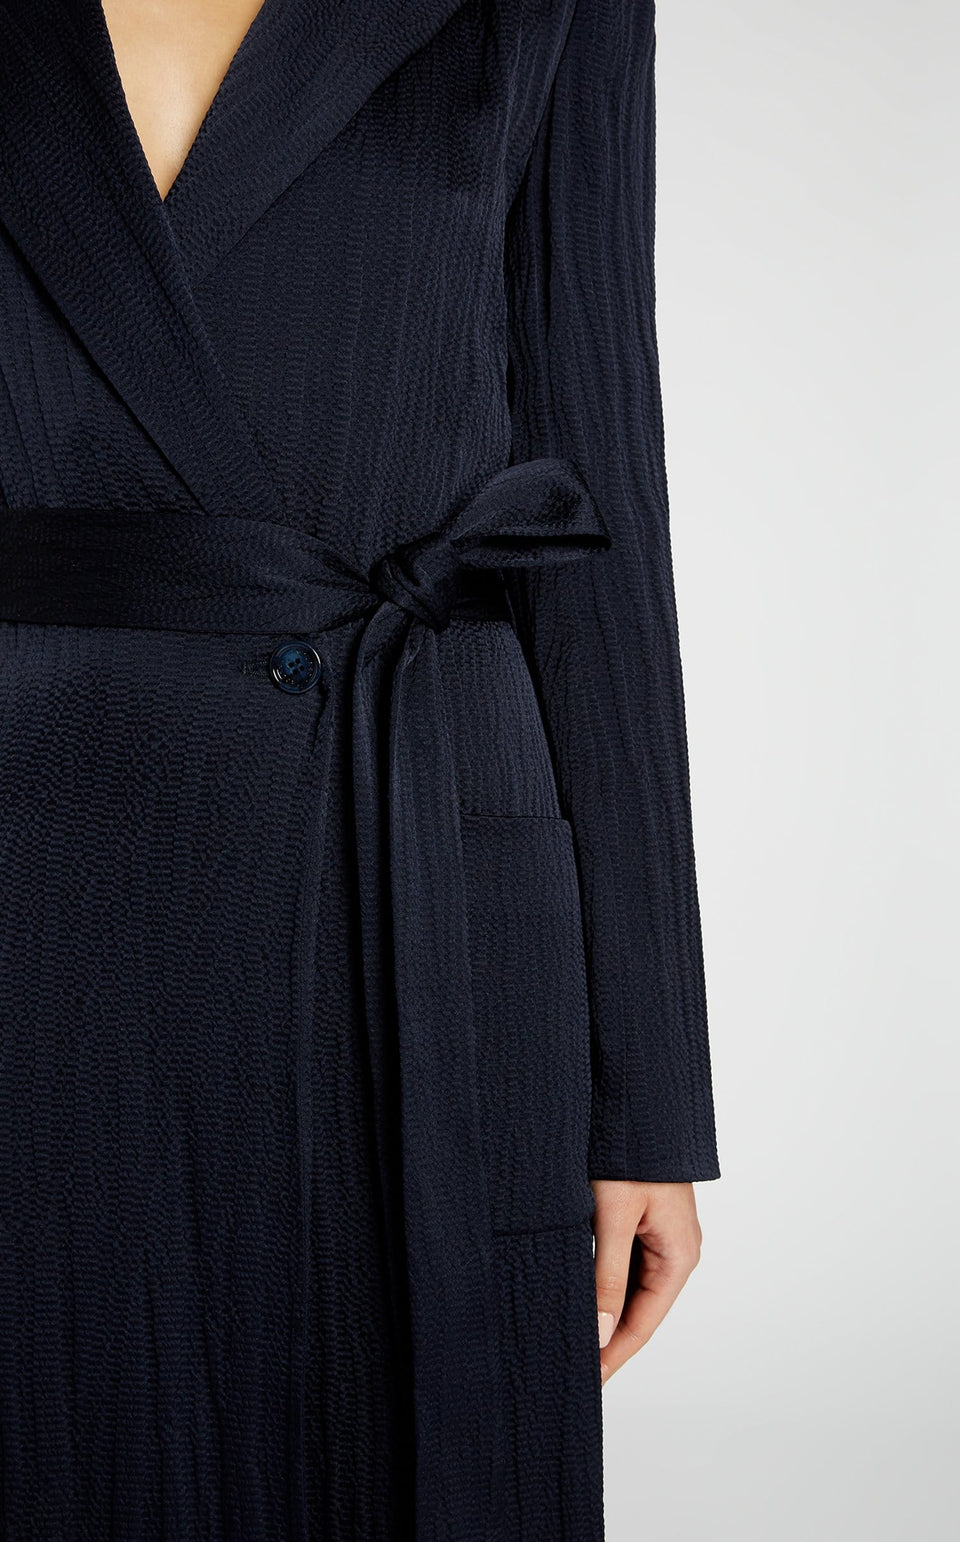 Heathcoat Coat In Navy from Roland Mouret